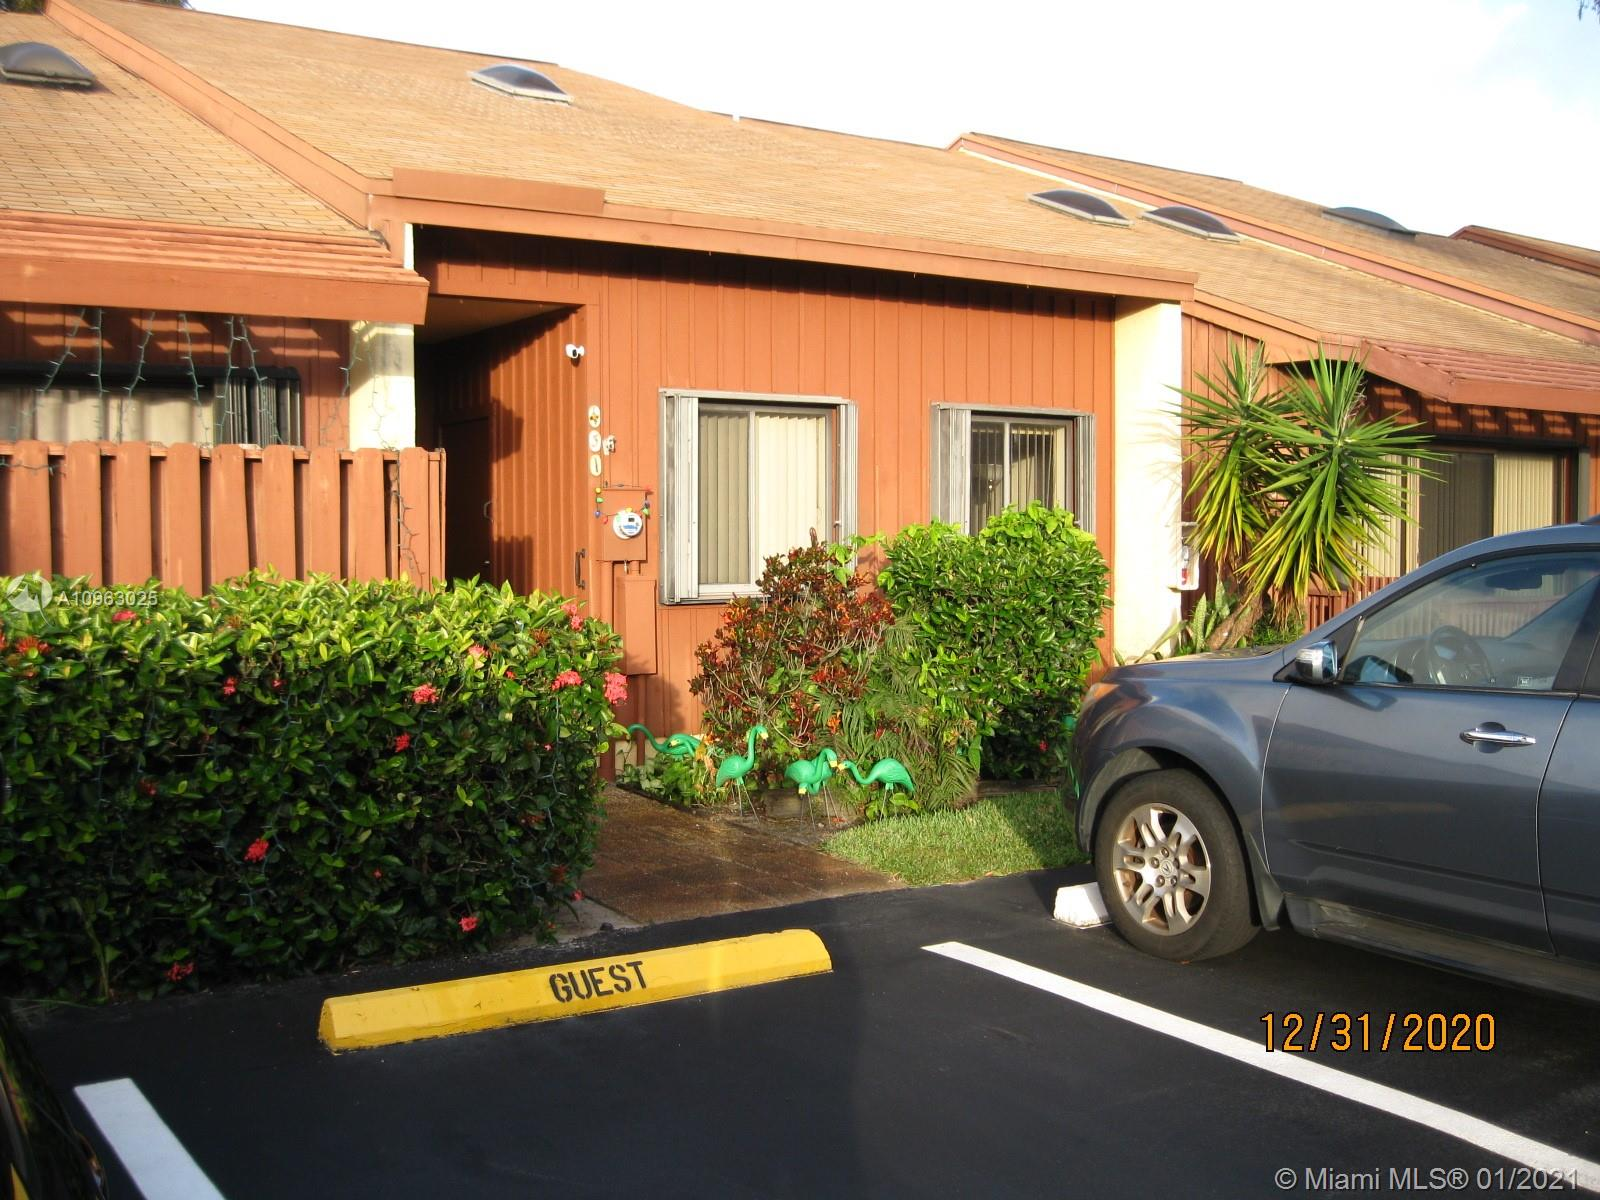 Very sought after Sandpiper Woods Townhouse being offered AS-IS. This unit is a 2 bedroom 2 full bath with vaulted ceilings, Hurricane shutters throughout. Parking right in front of unit with guest spots. Outside storage unit at front entrance. Walking distance to shopping centers and Memorial Regional walk in clinic as well as Outdoor fitness station. One mile to beach, 10 minutes to Ft Lauderdale Airport and most major attractions. Very quiet neighborhood and low maintenance fee. Beautiful pool and surroundings.